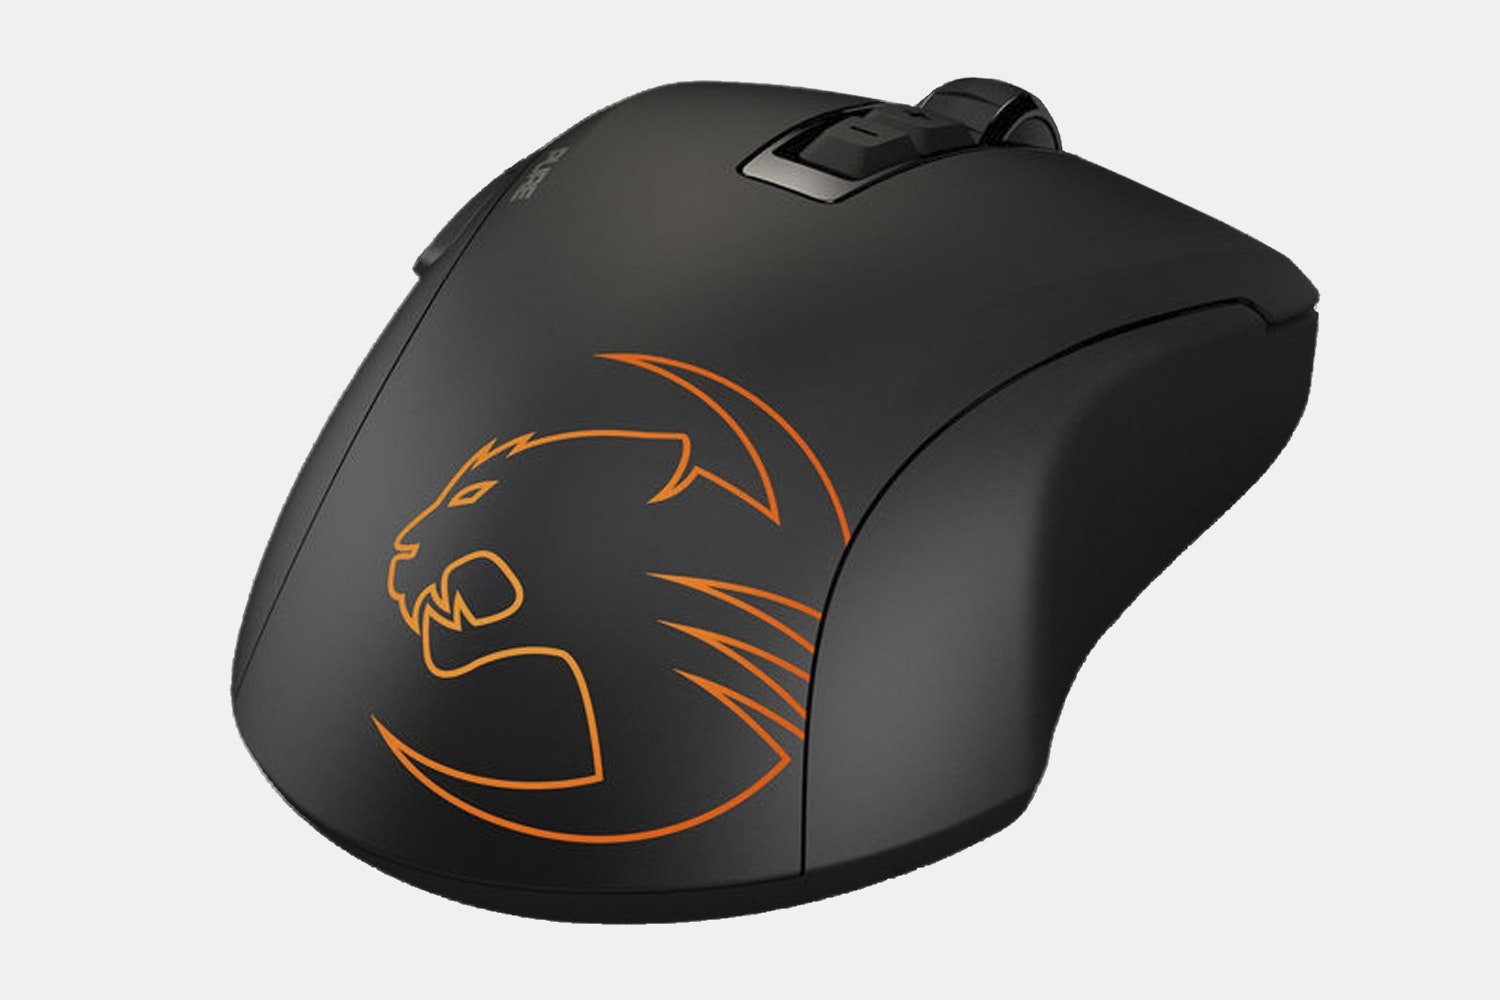 Roccat Kone Pure SE – Massdrop Exclusive